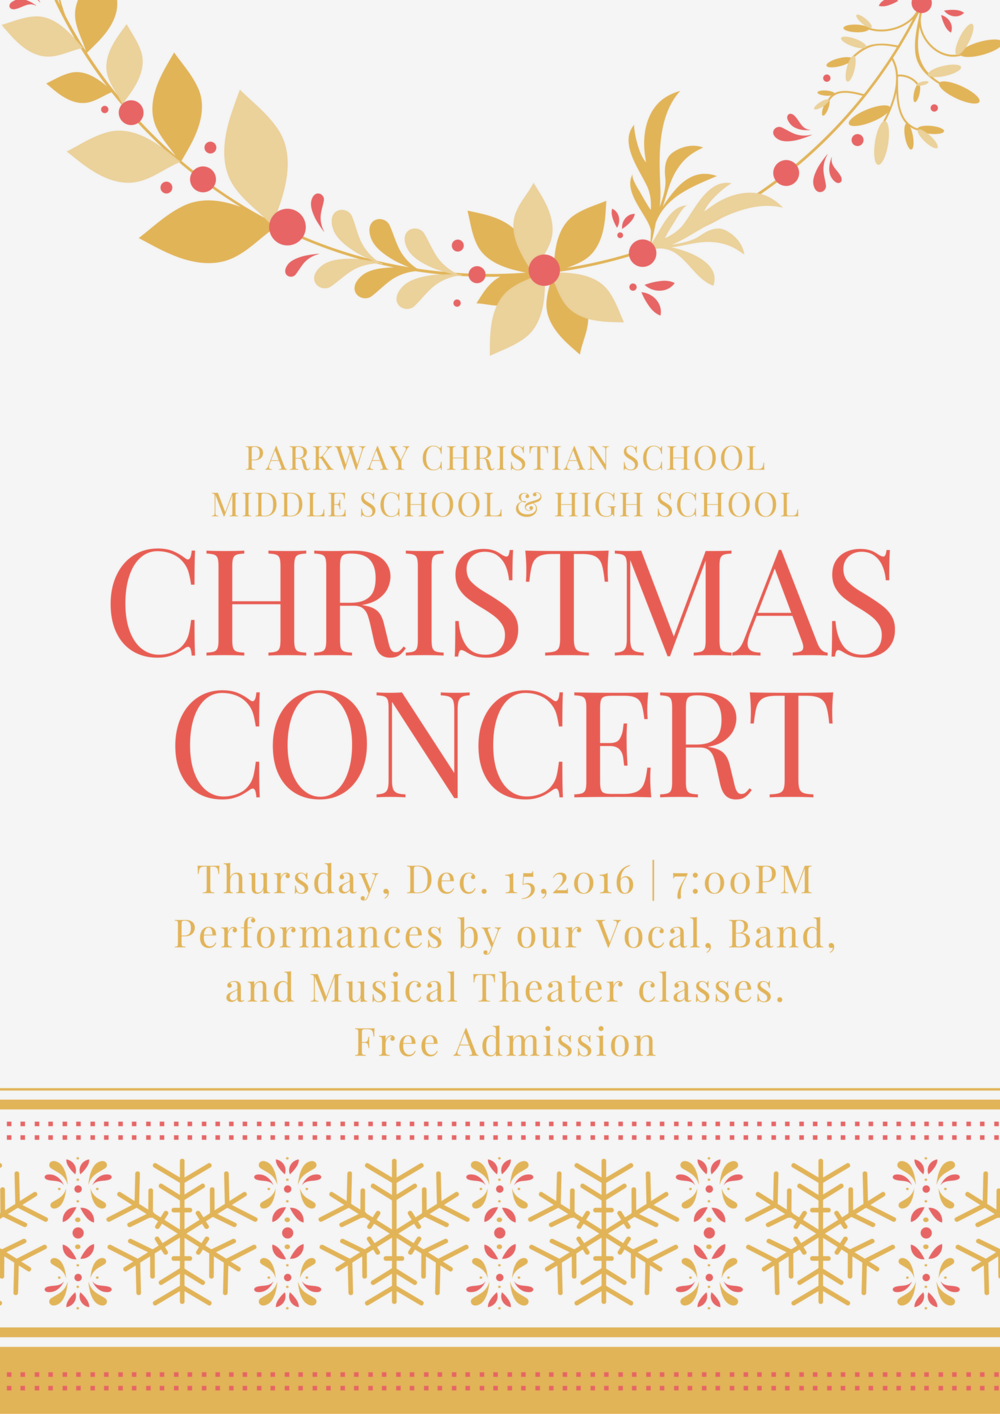 Parkway Christian School Middle School & High School Christmas Concert